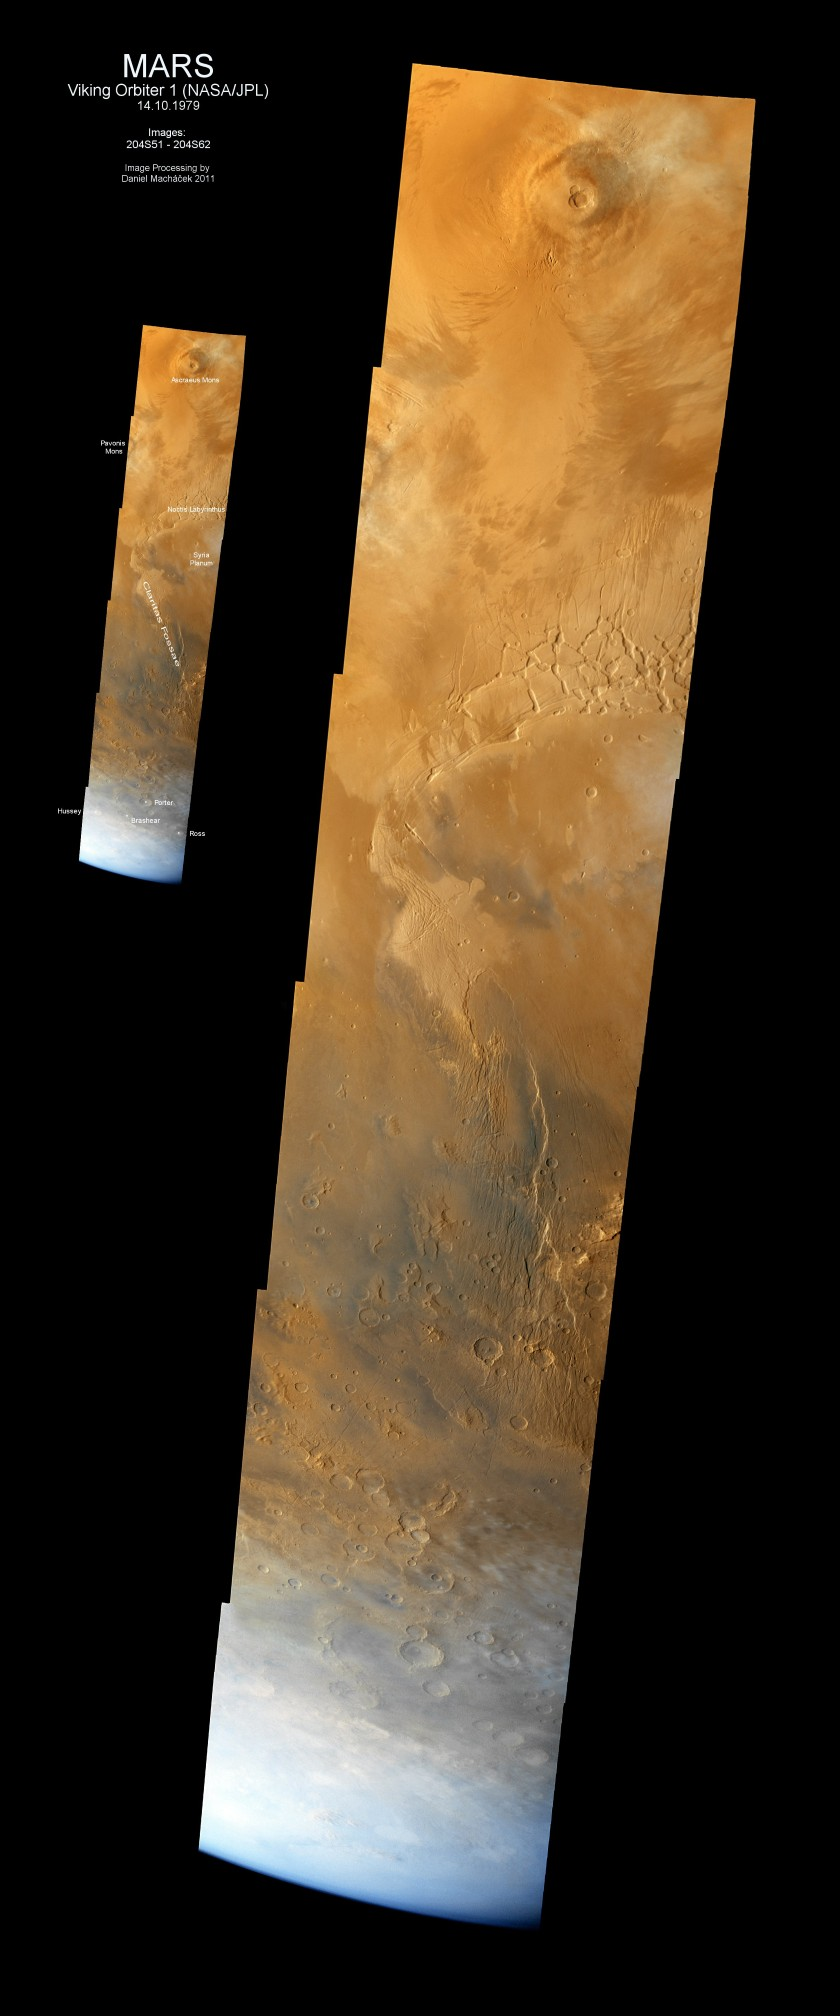 Viking 1 view of Mars' southern hemisphere from Ascraeus Mons to the pole